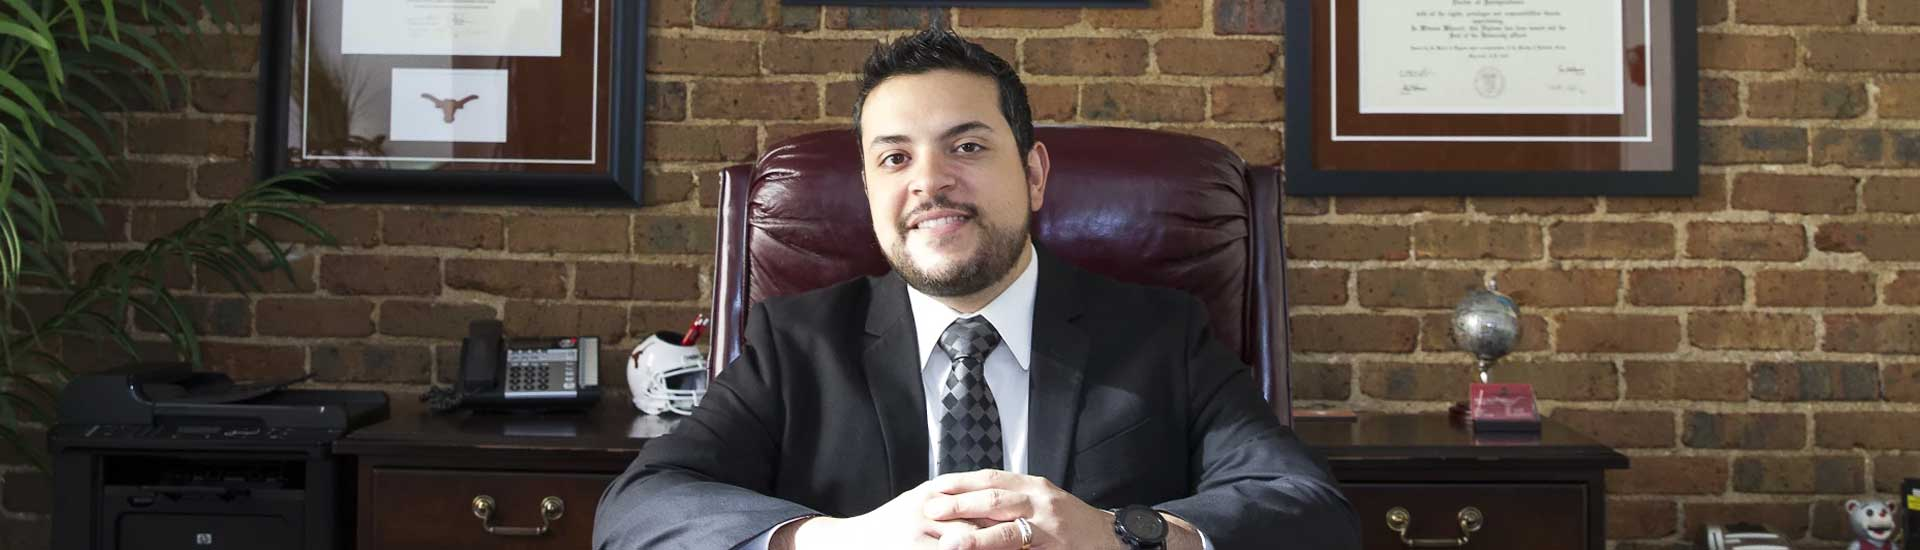 Eric Benavides Criminal Attorney in Houston TX